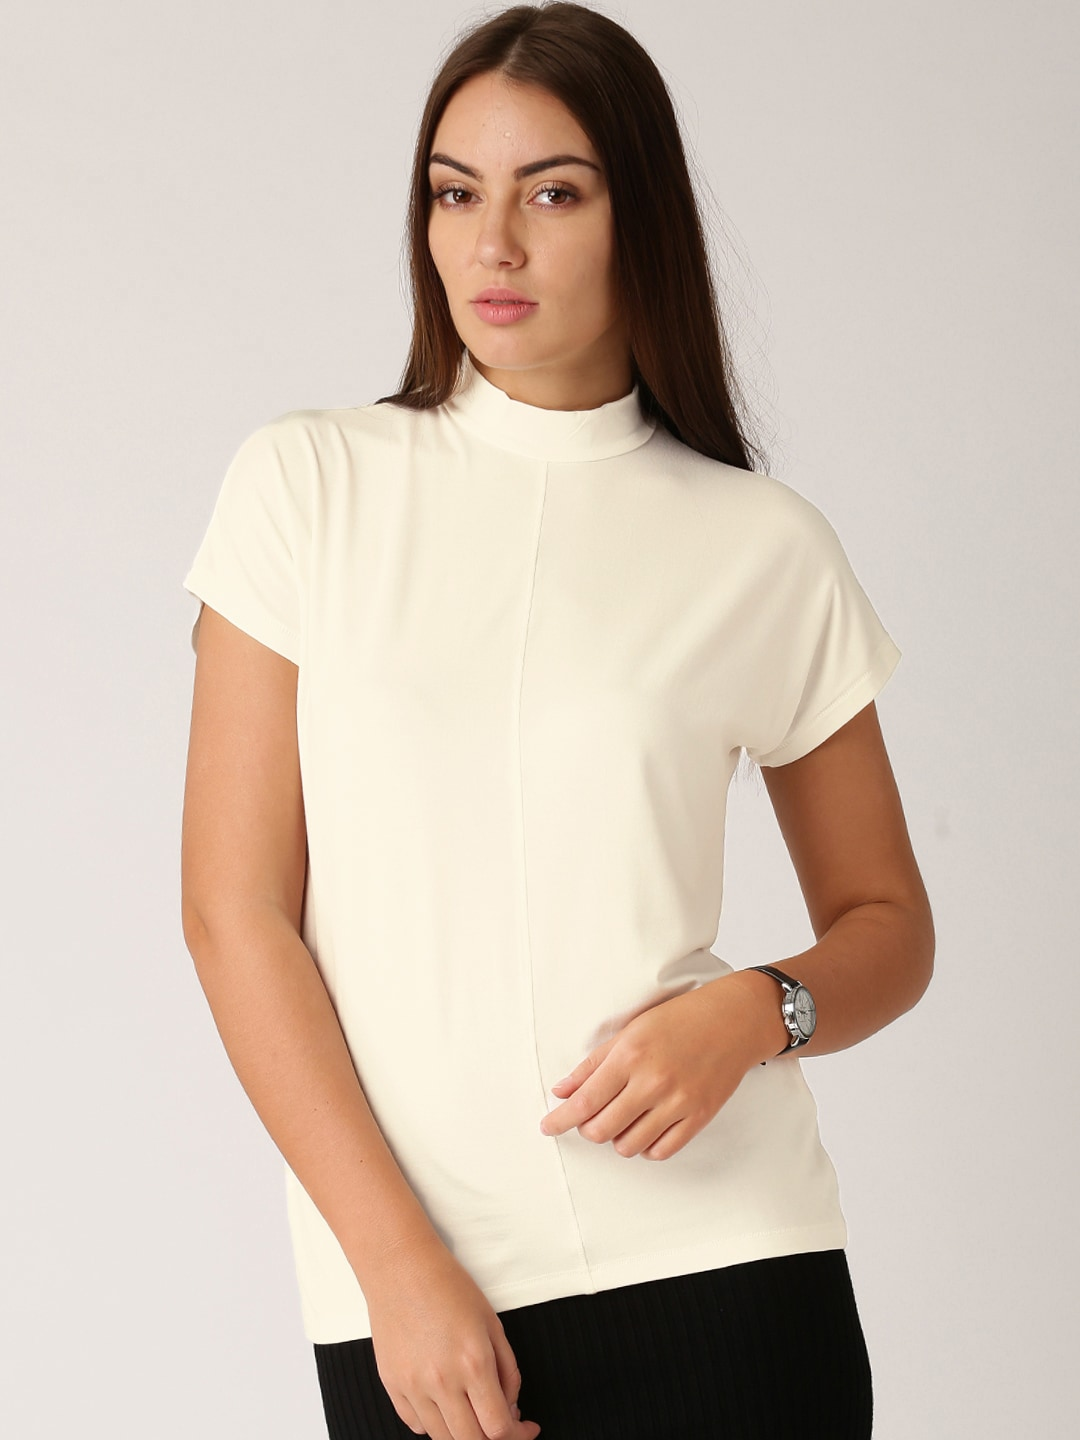 aae90a80 Ladies Tops - Buy Tops & T-shirts for Women Online | Myntra